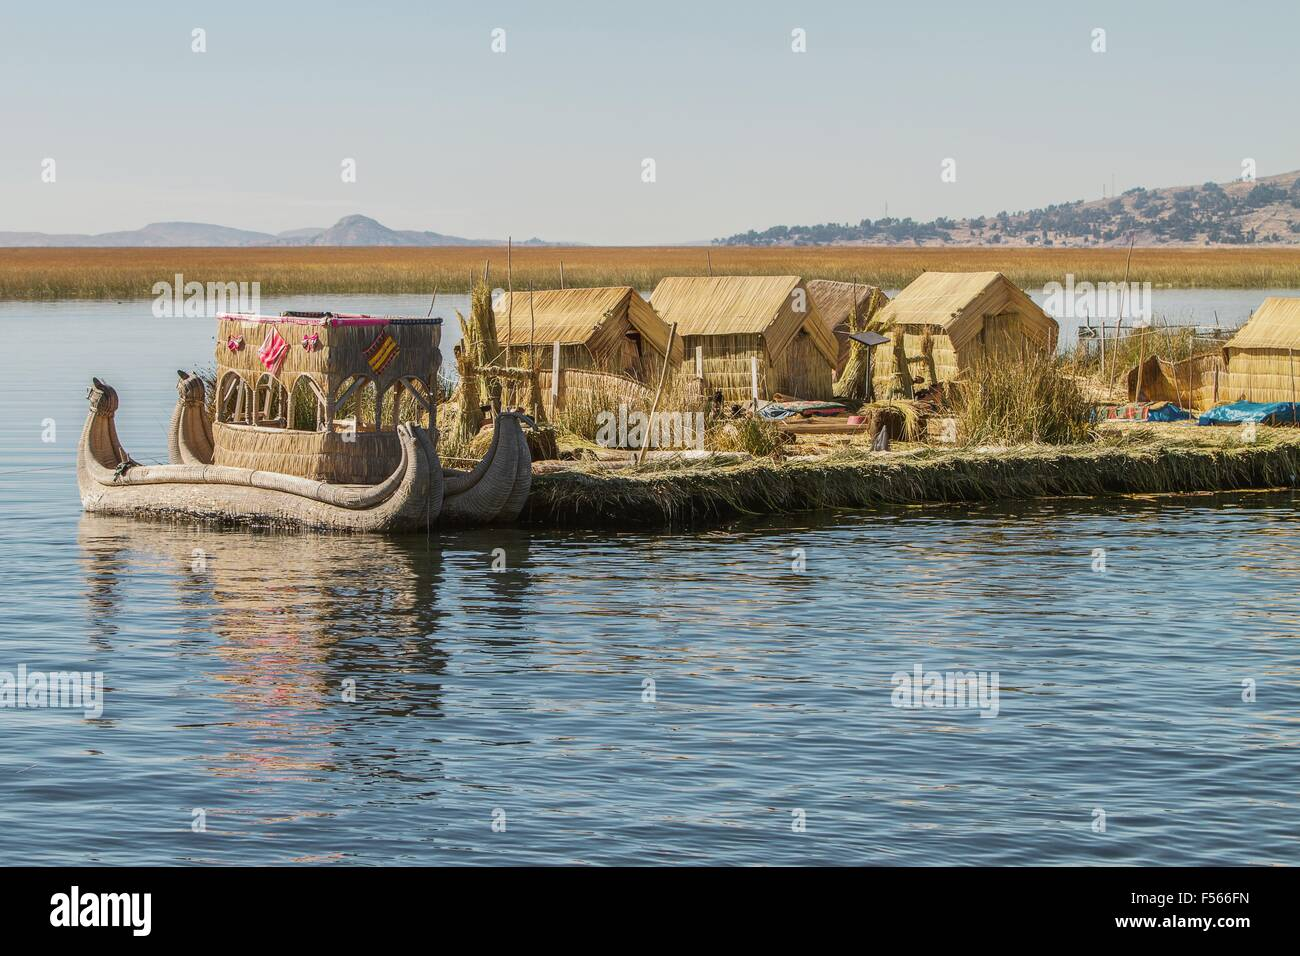 View of floating island Uros, Lake Titicaca, Peru, Bolivia and reed boat with its reflection. - Stock Image